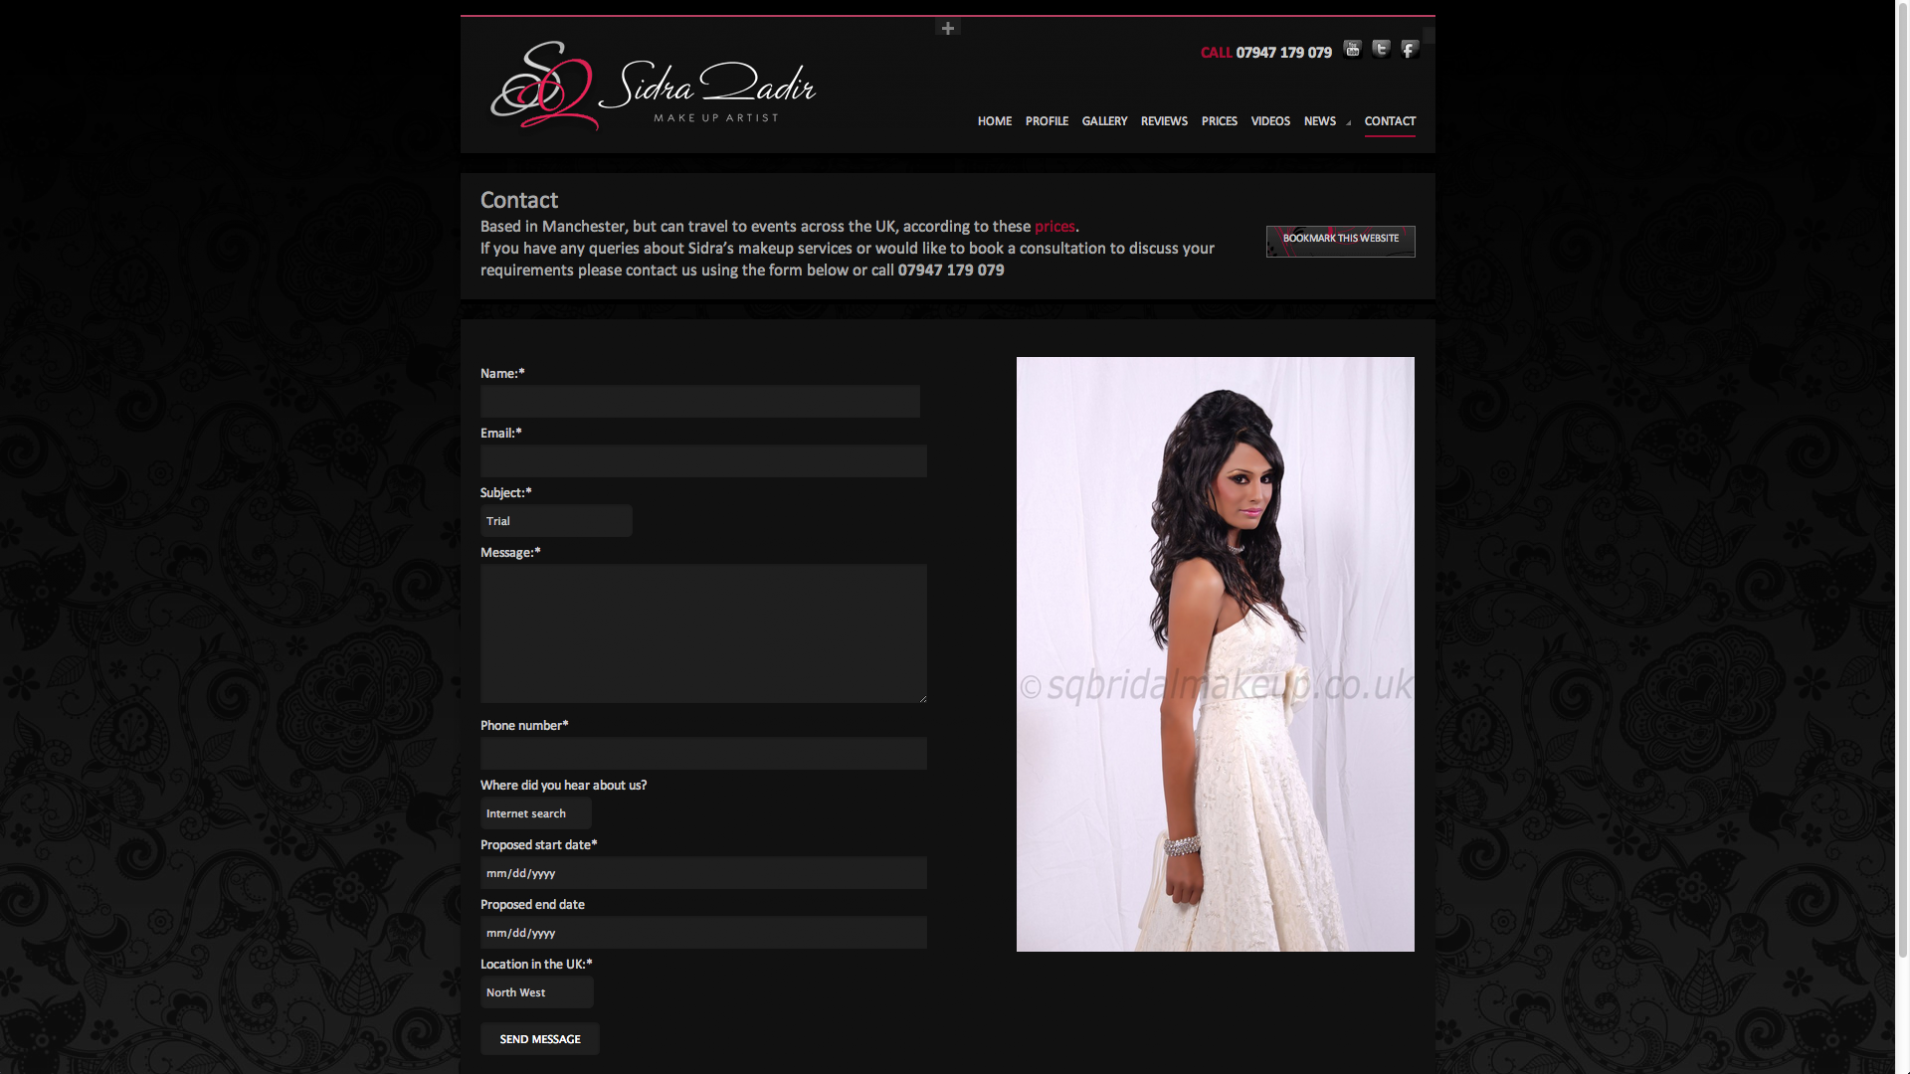 Screen Shot 2013 12 23 at 16.35.07 - Website design for professional UK Makeup artist